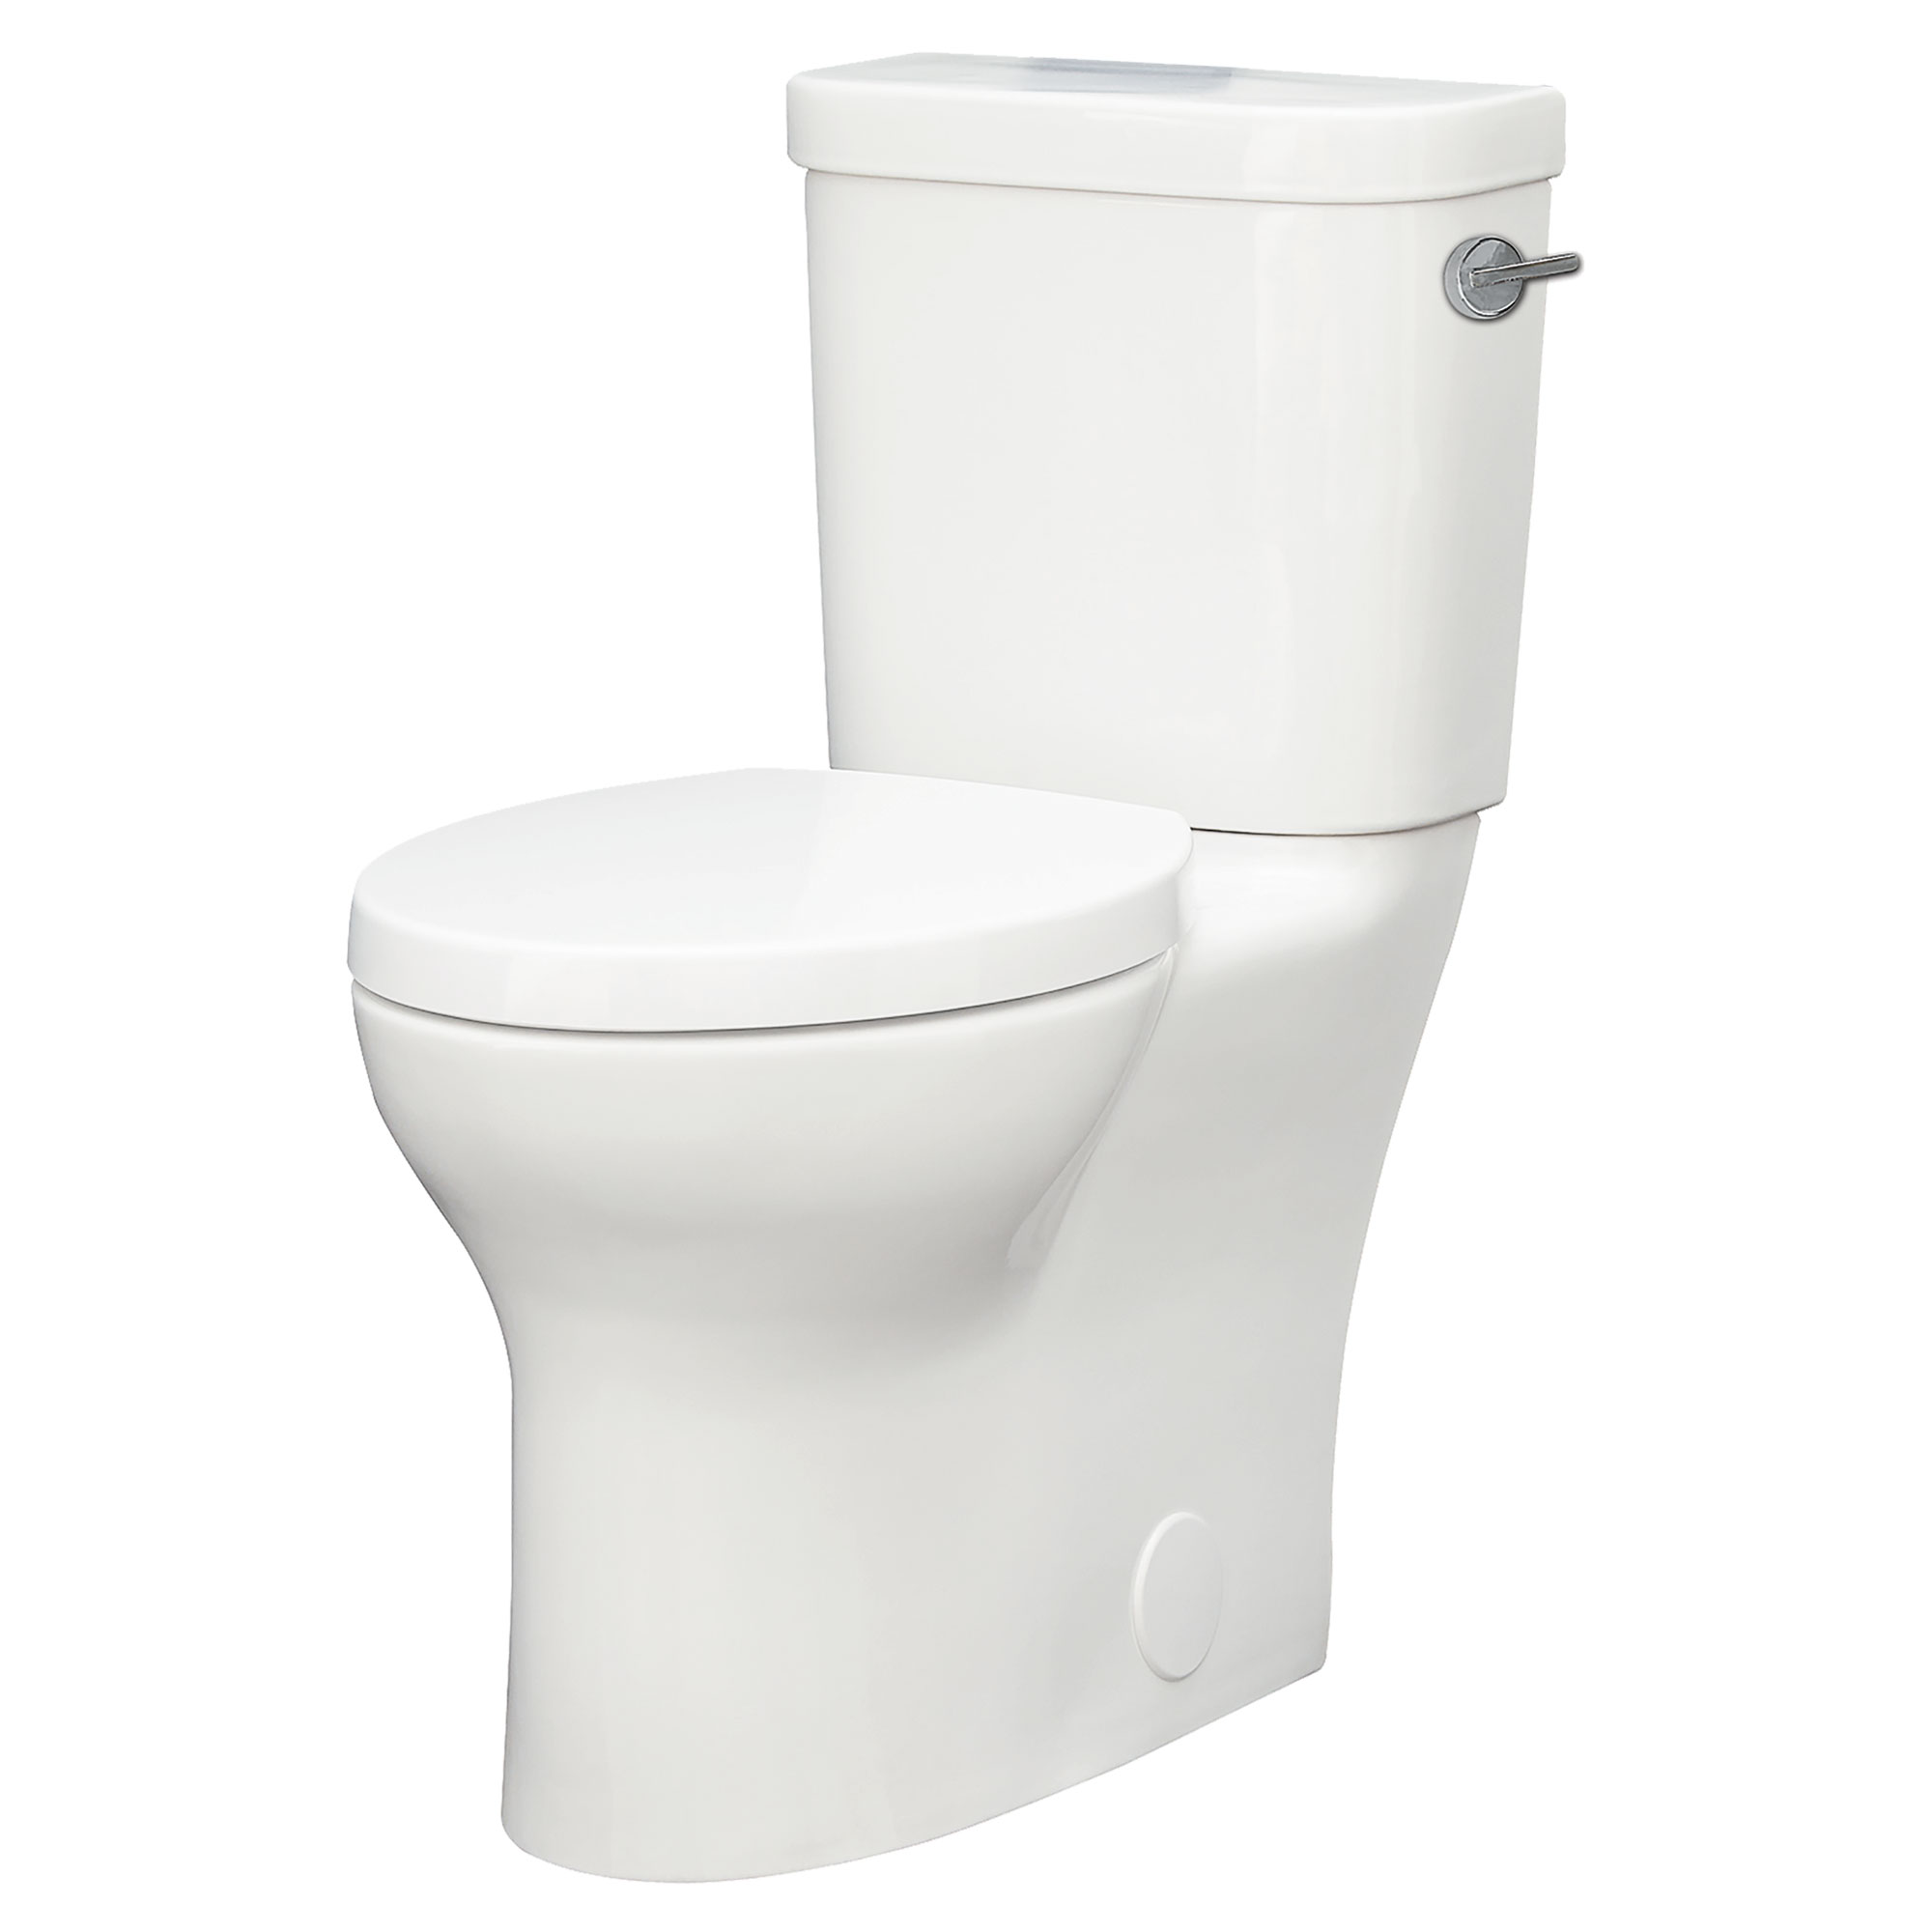 Equility Two-Piece Right Height Elongated Toilet with Left-Hand Trip Lever - Projects Model